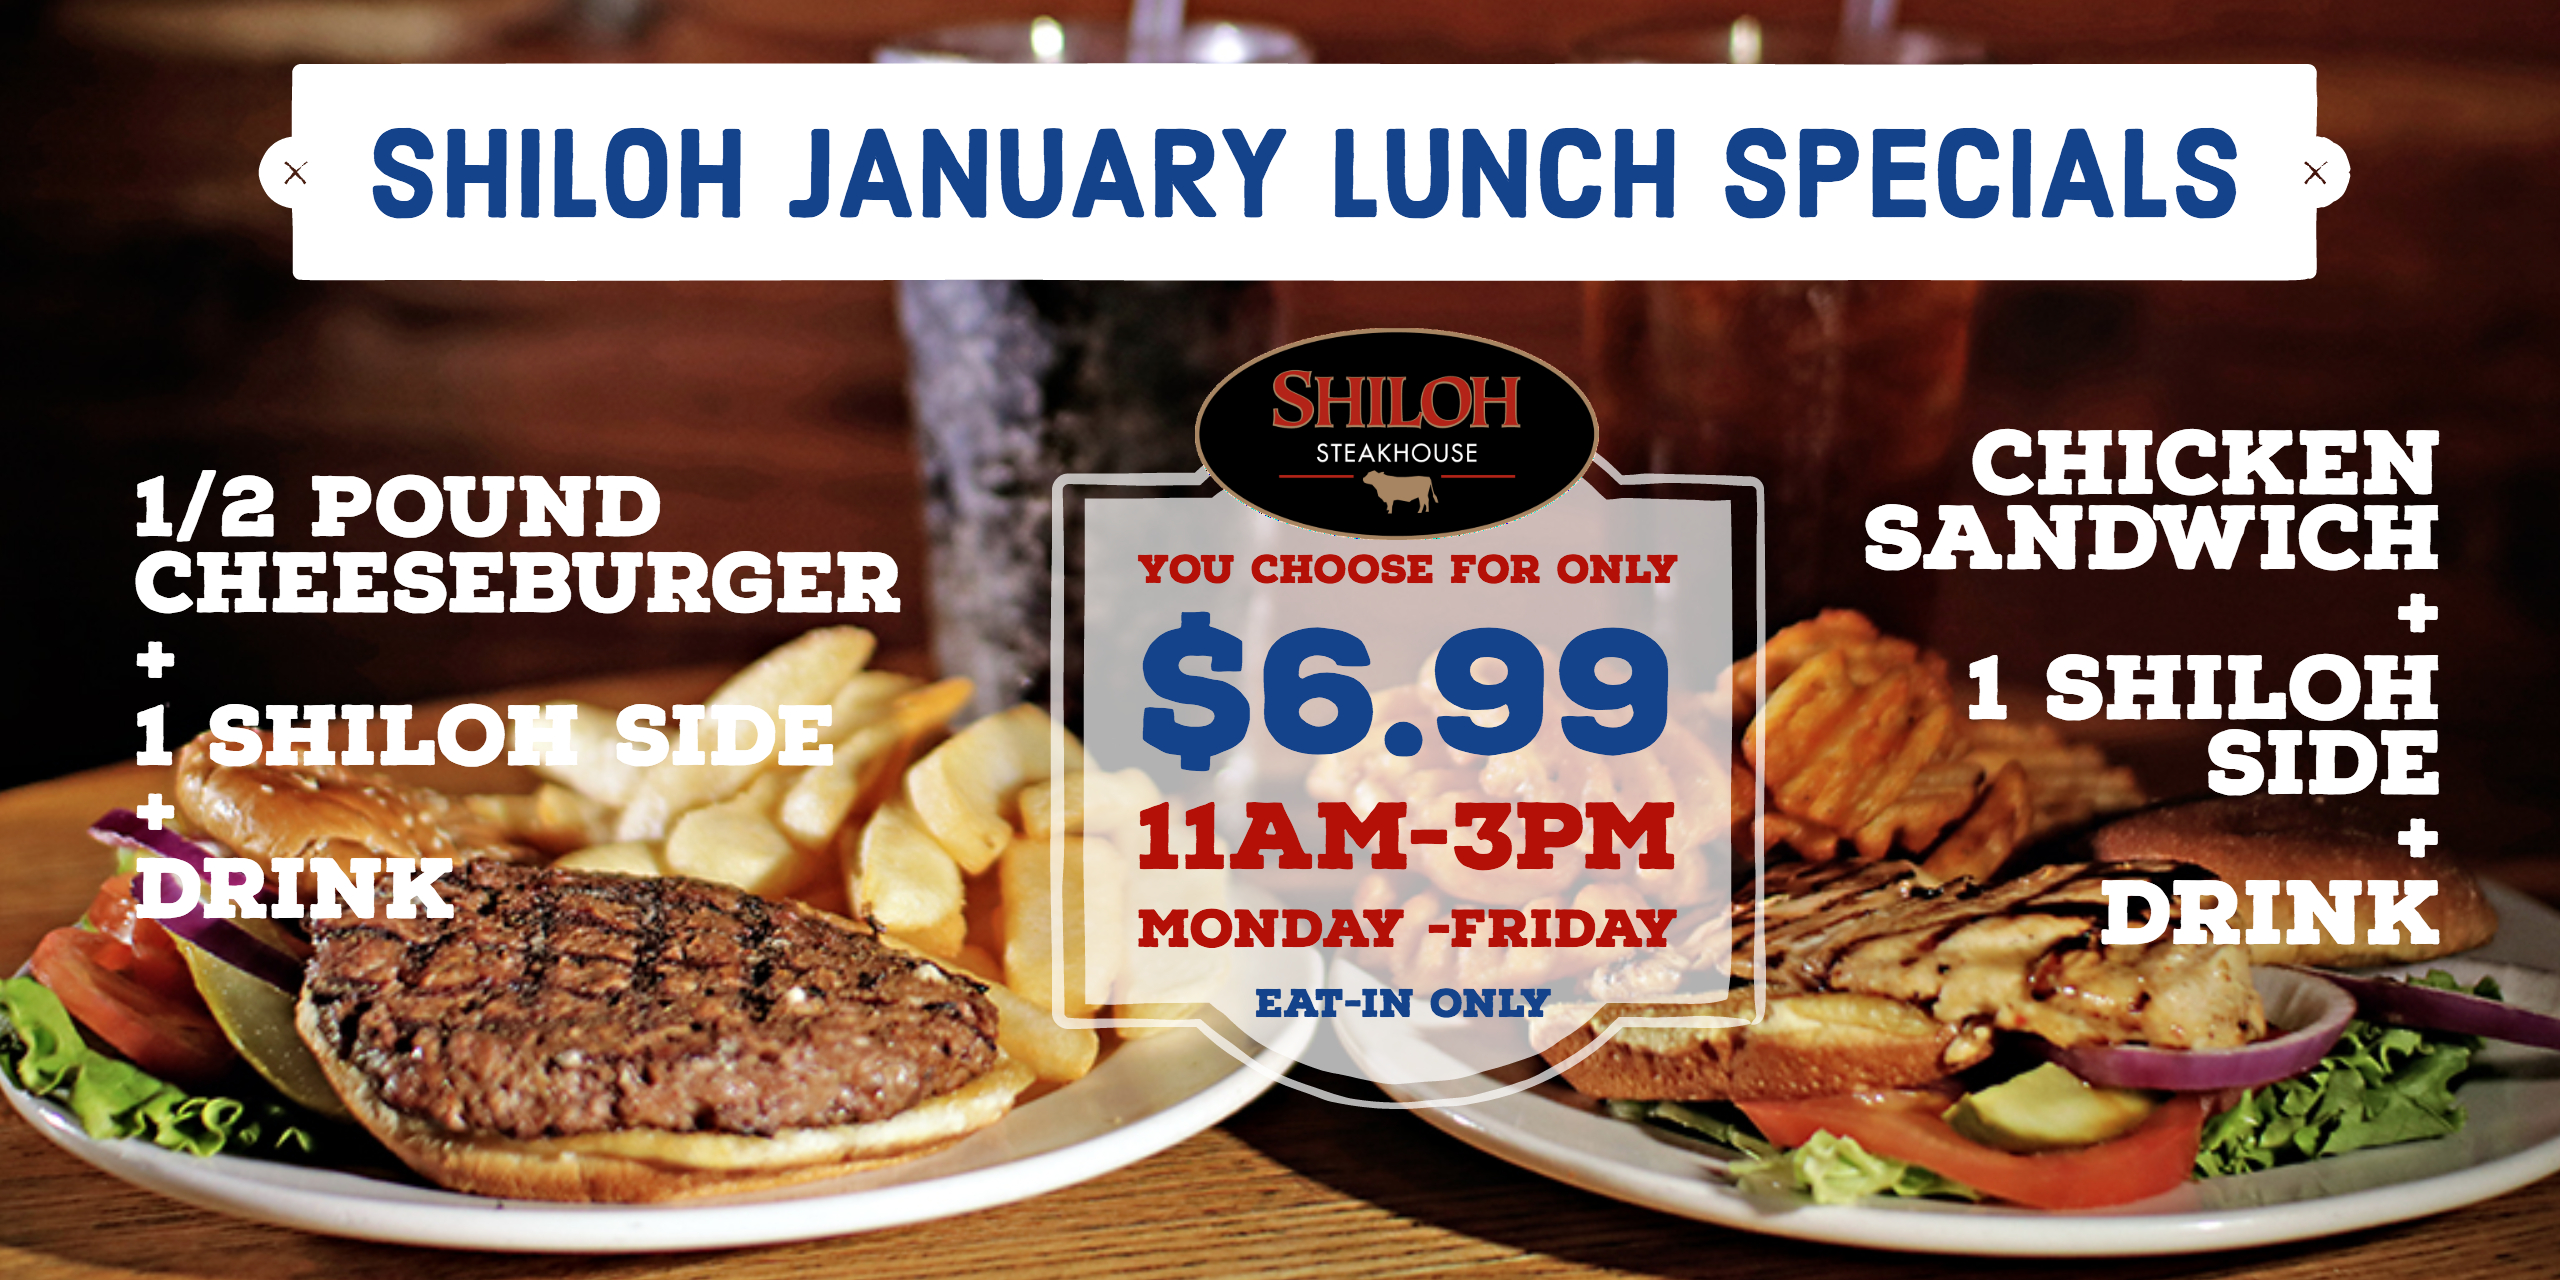 January Lunch Specials – $6.99